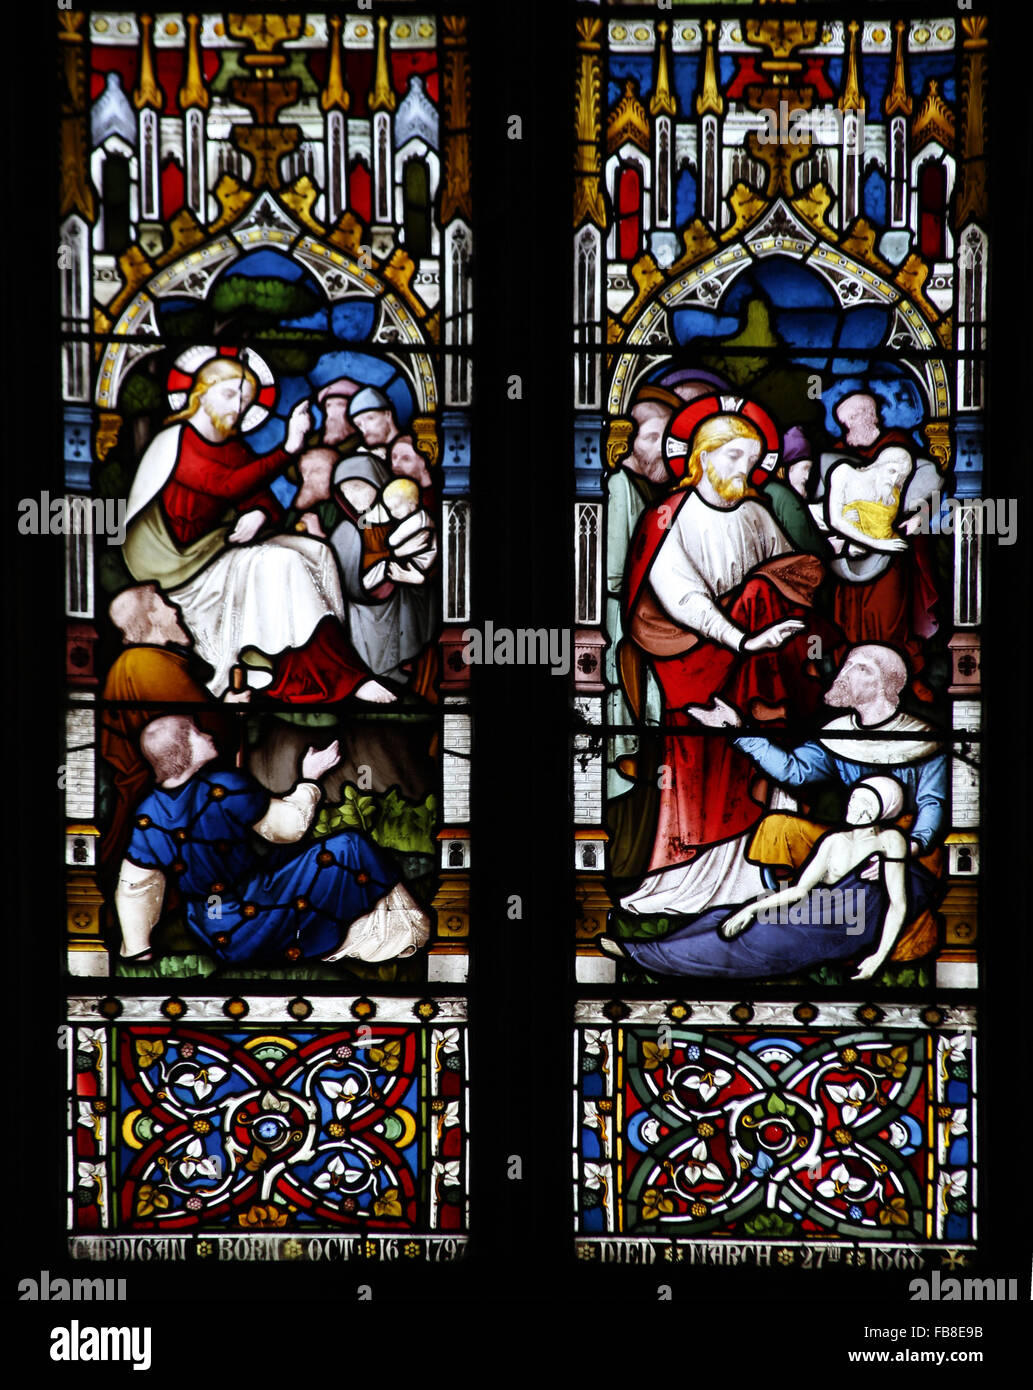 East window by Lavers, Berraud and Westlake, depicting Jesus preaching and healing the sick, St Peter's Church, - Stock Image